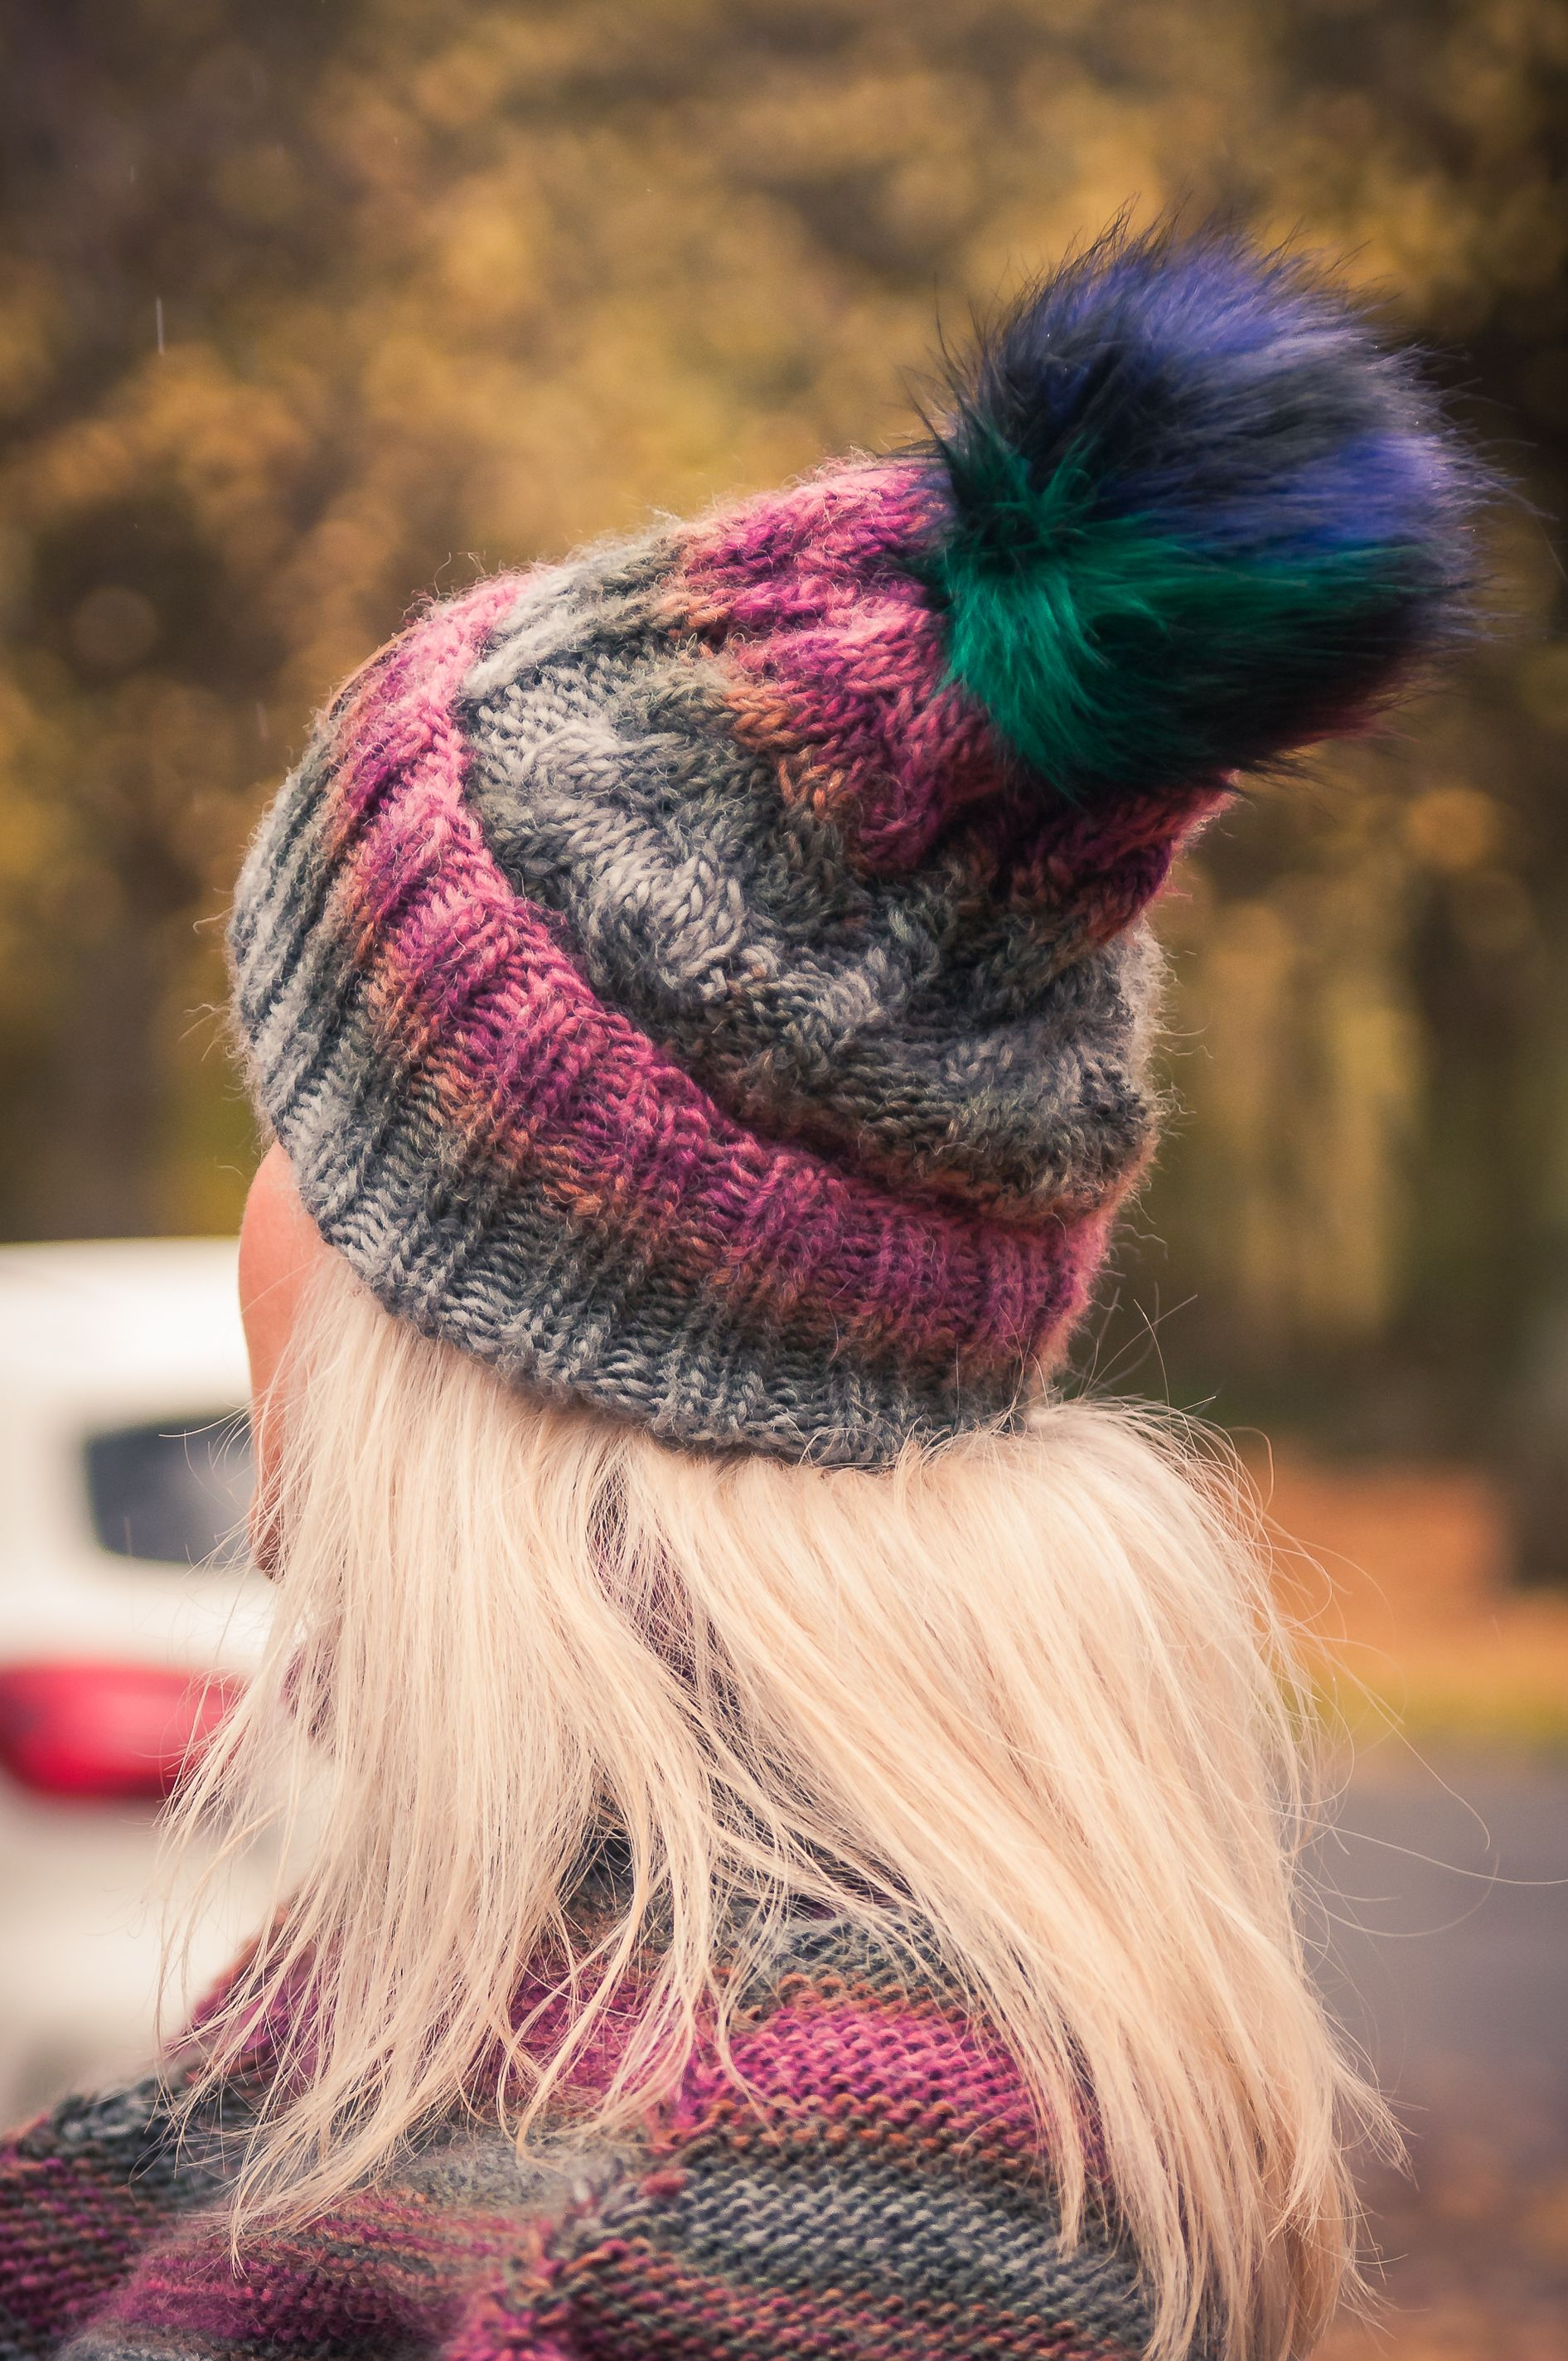 acfa5fe75d4 Handmade hat. Multicolored hat. Cap with pom pom